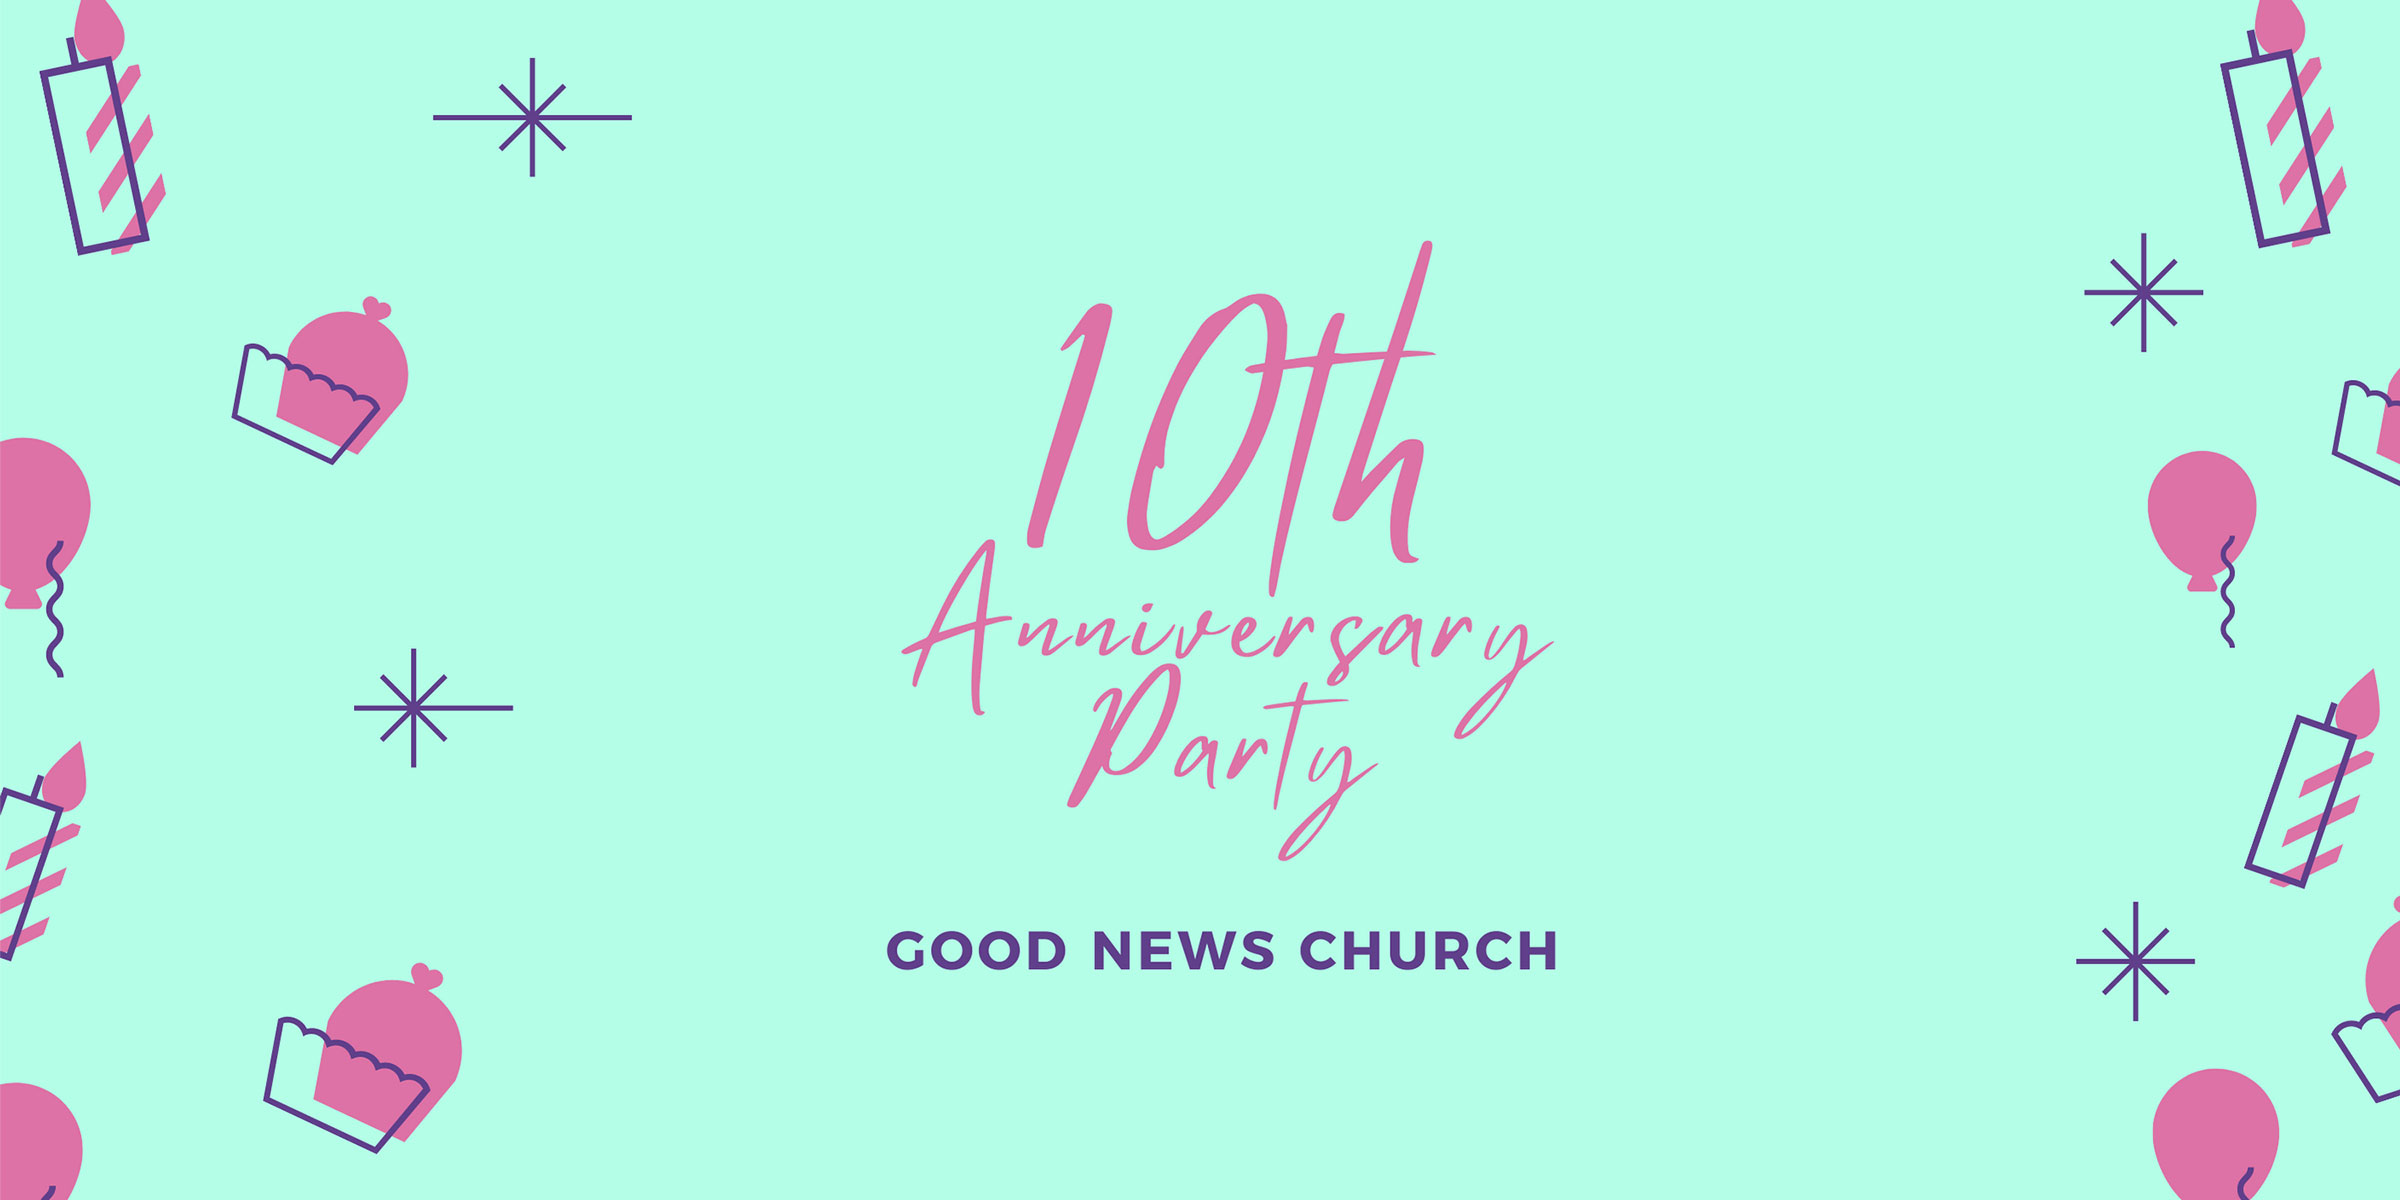 Can you believe it? Good News Church is almost 10 years old!